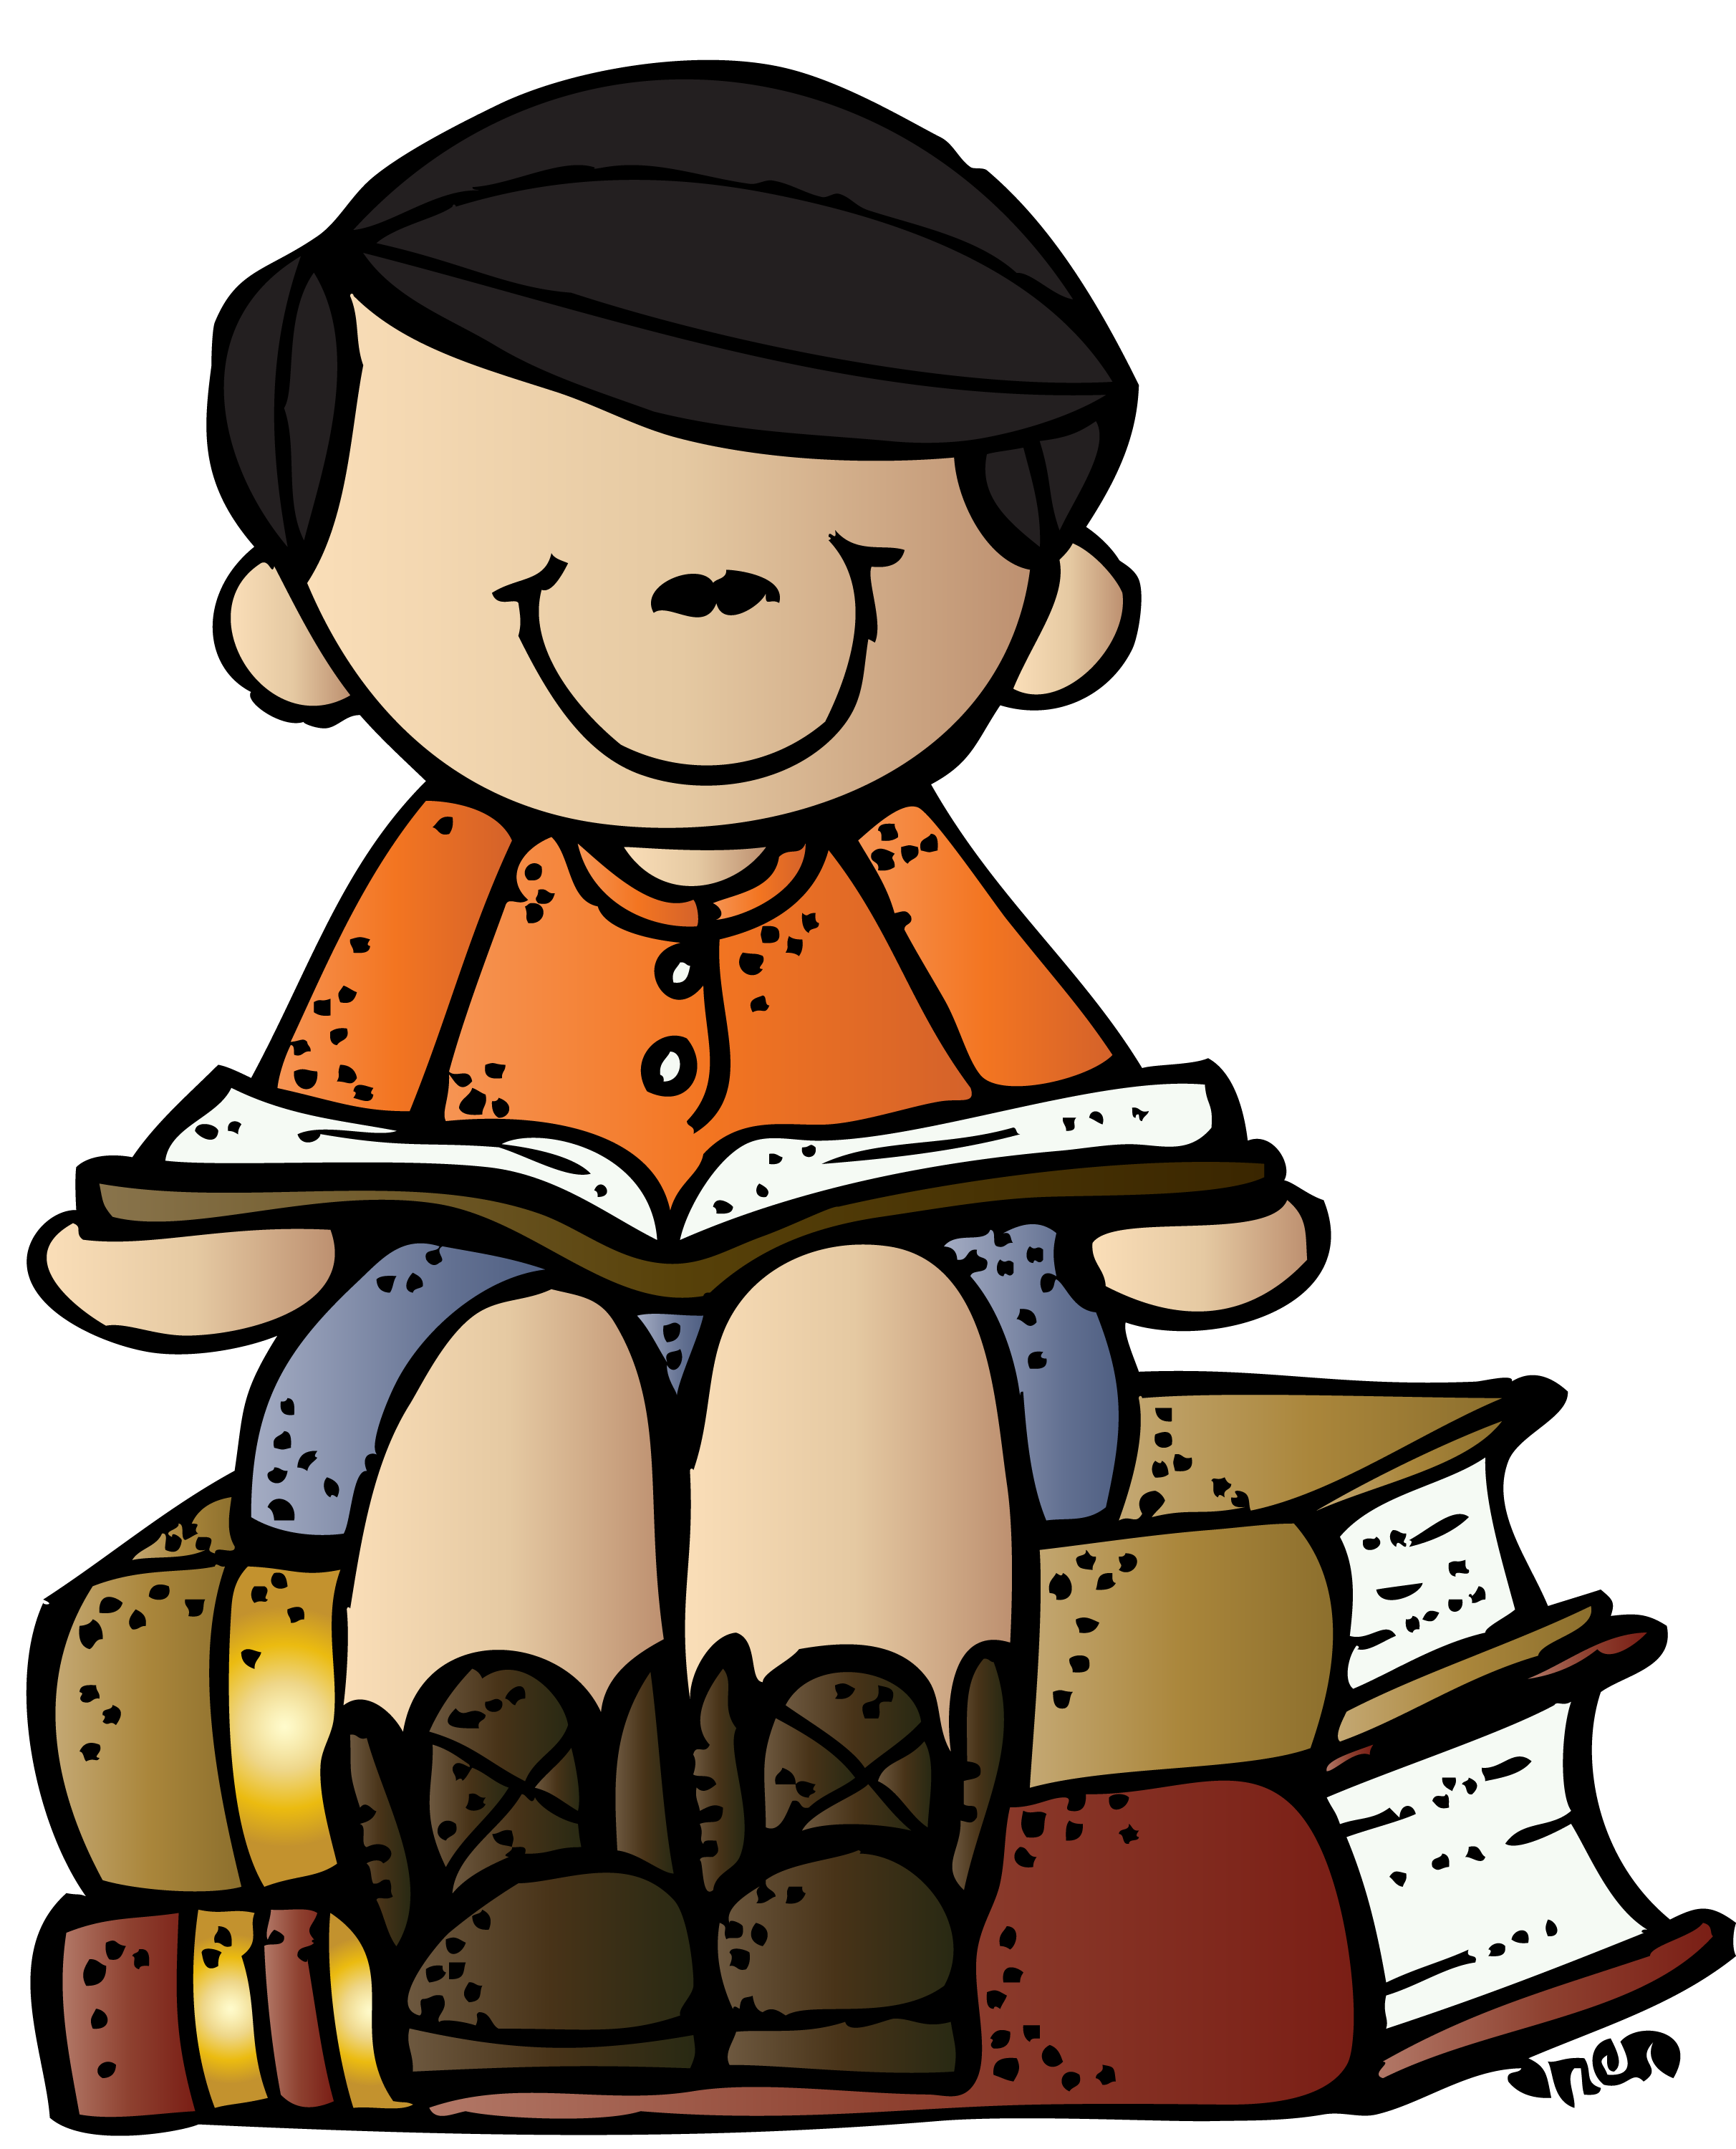 Homework clipart elementary school. Melonheadz writing boy on